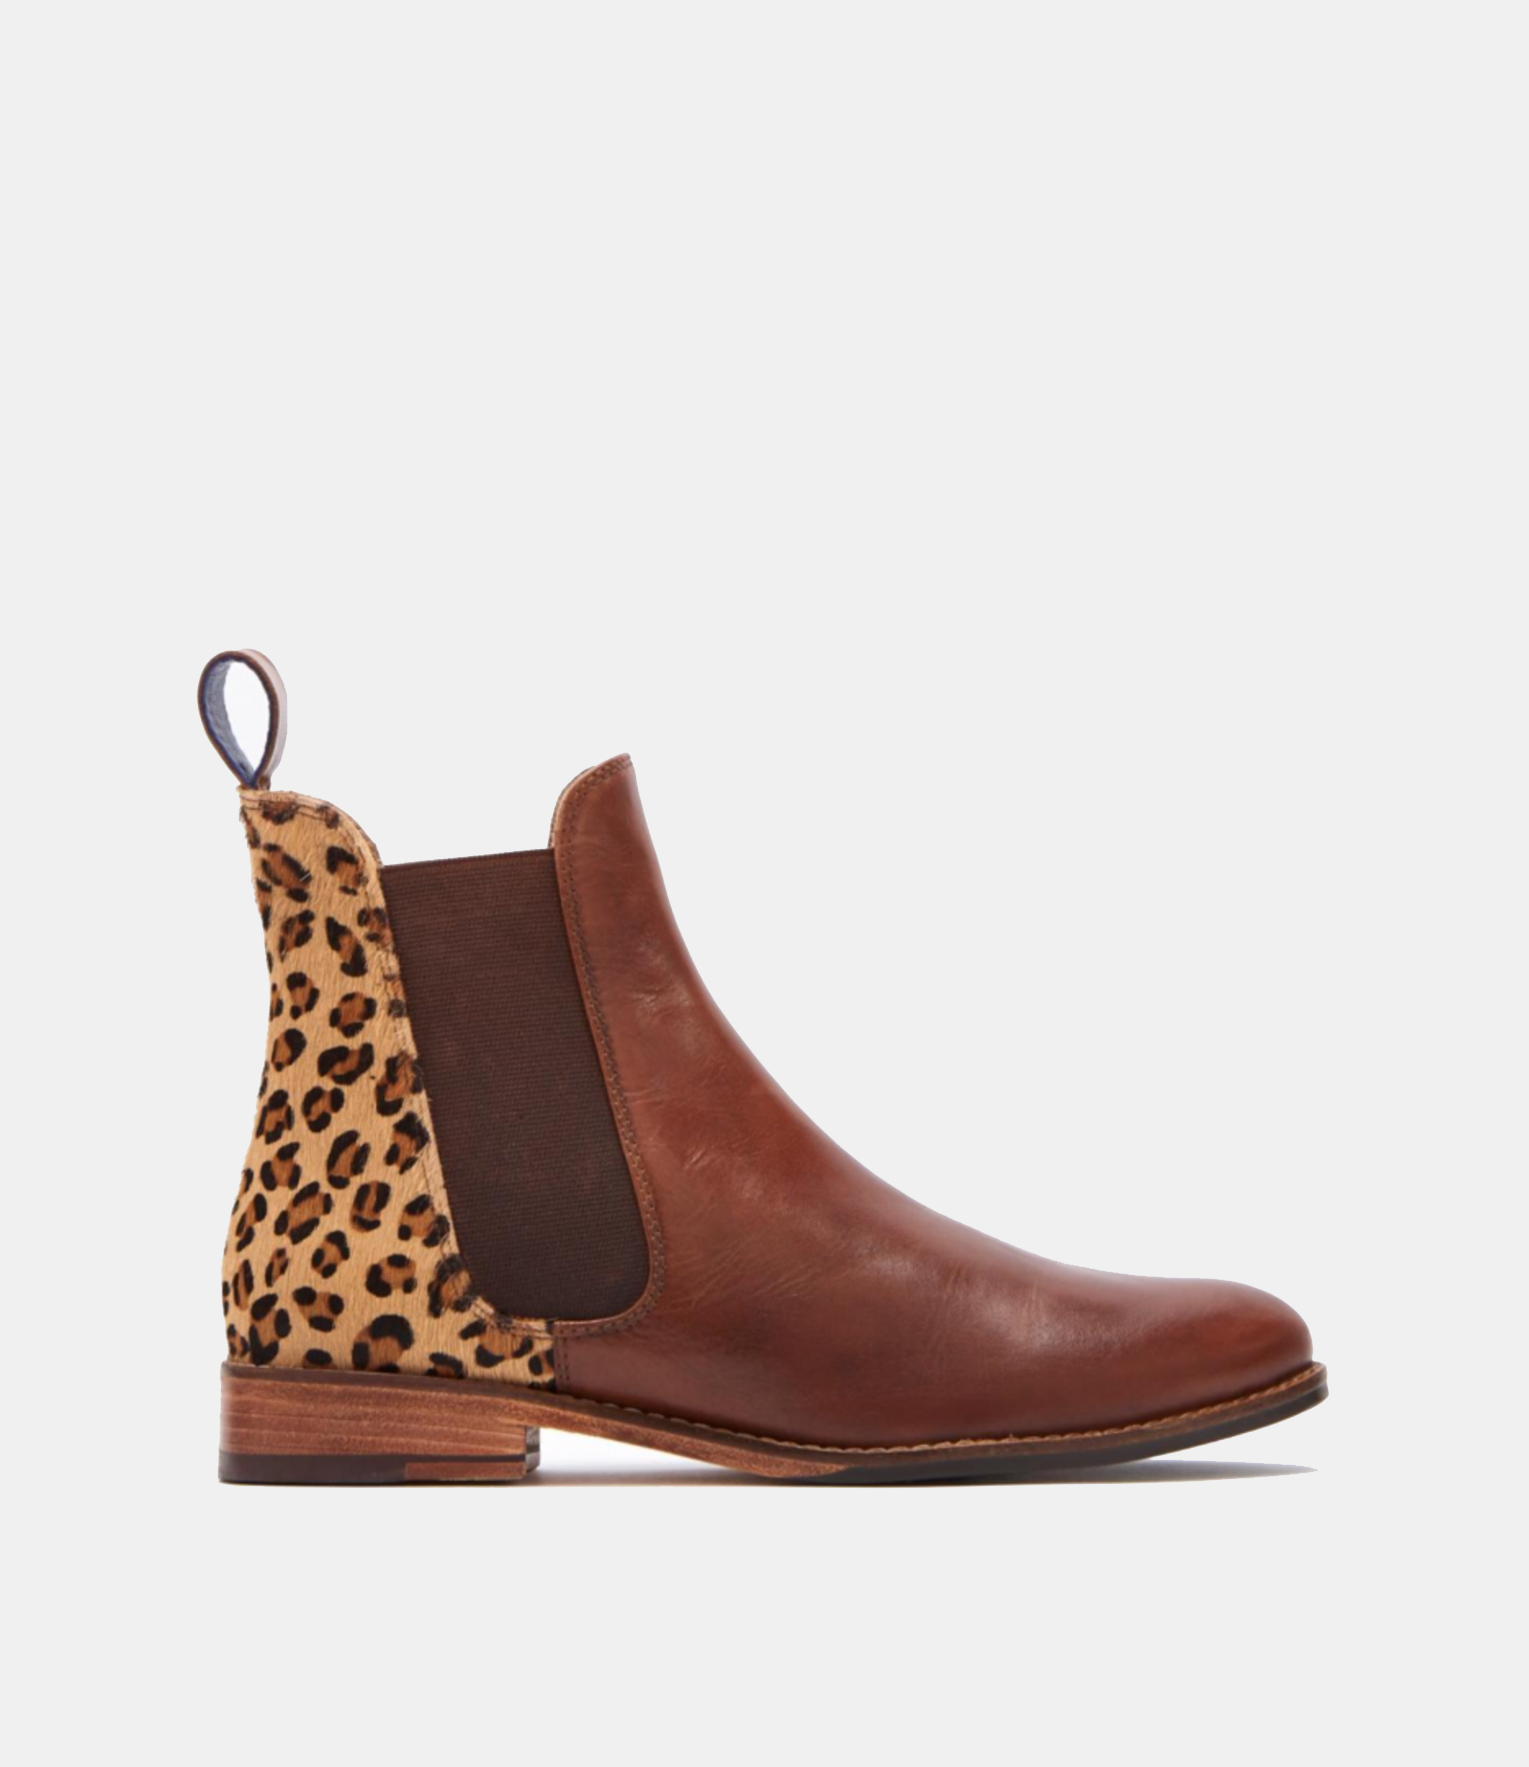 Leopard Print Ankle Boots For AW18